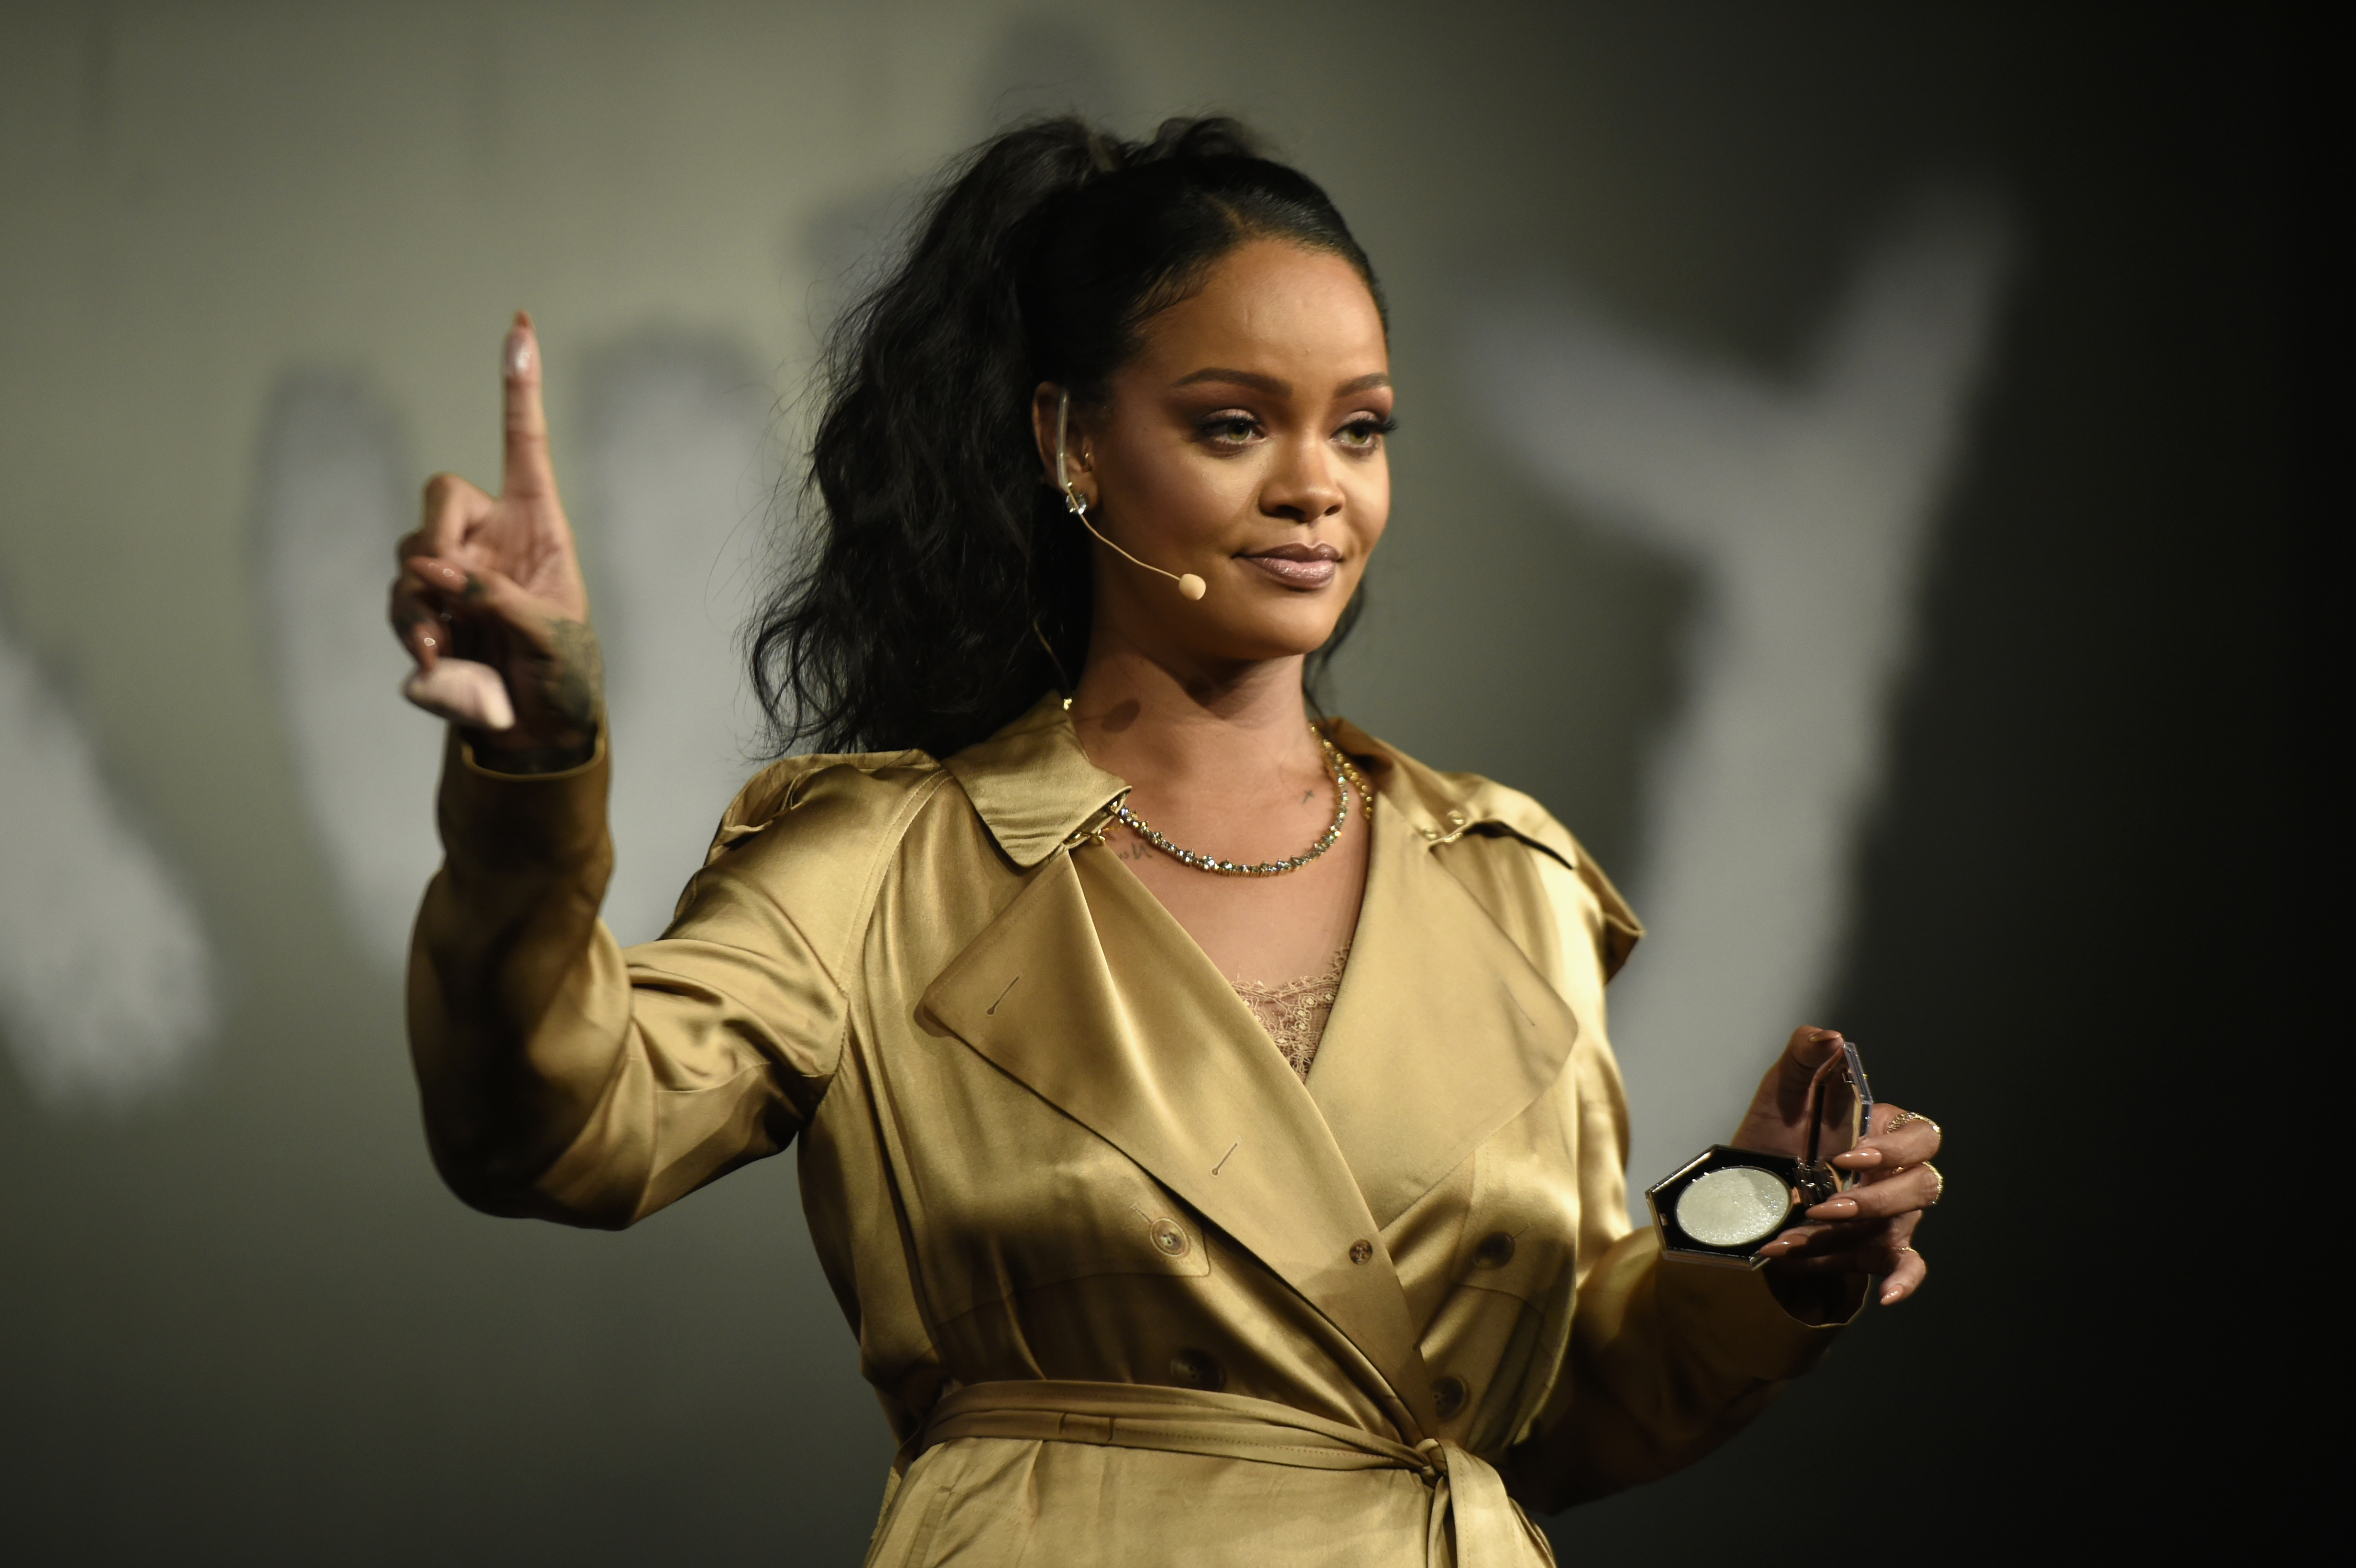 Rihanna gestures on stage during her Fenty Beauty talk in collaboration with Sephora, for the launch of her new Stunna Lip paint  Uninvited  on September 29, 2018 in Dubai, United Arab Emirates.